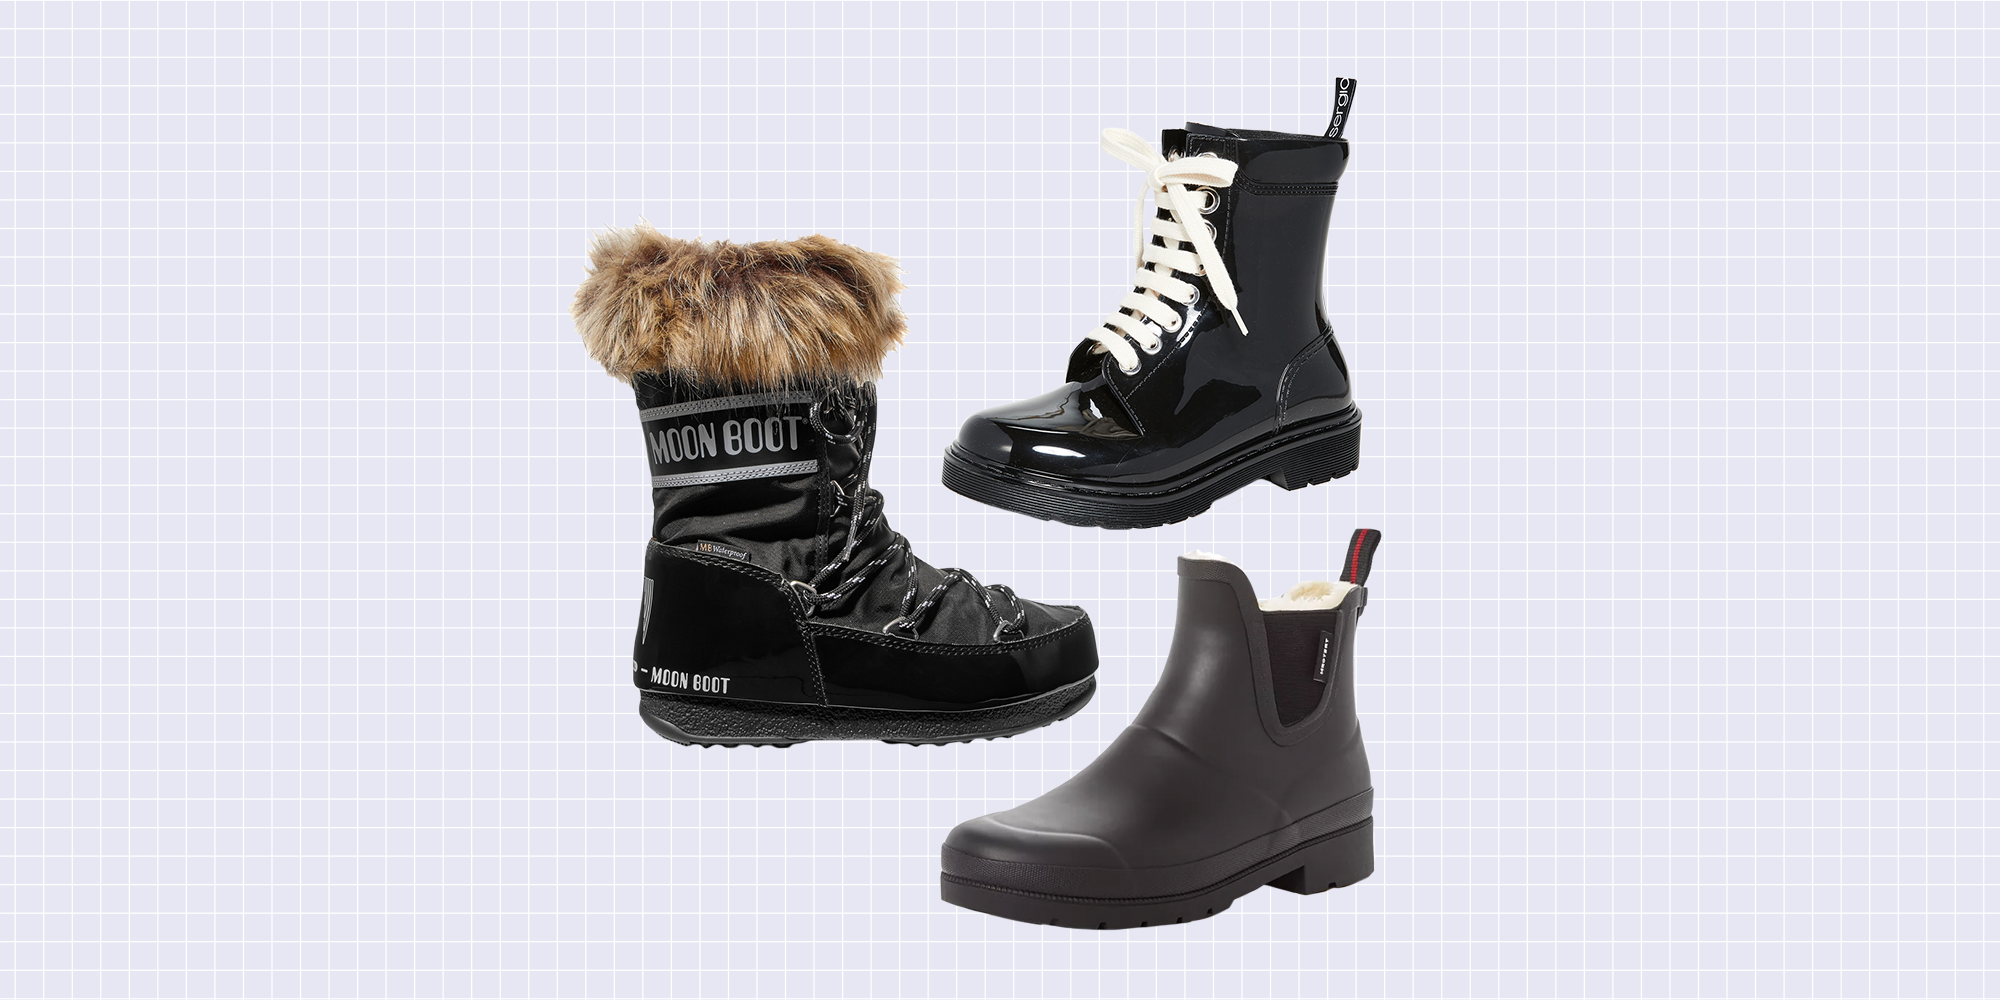 298787ffc70 15 Best Snow Boots For Women 2019 - Stylish Warm Winter Boots